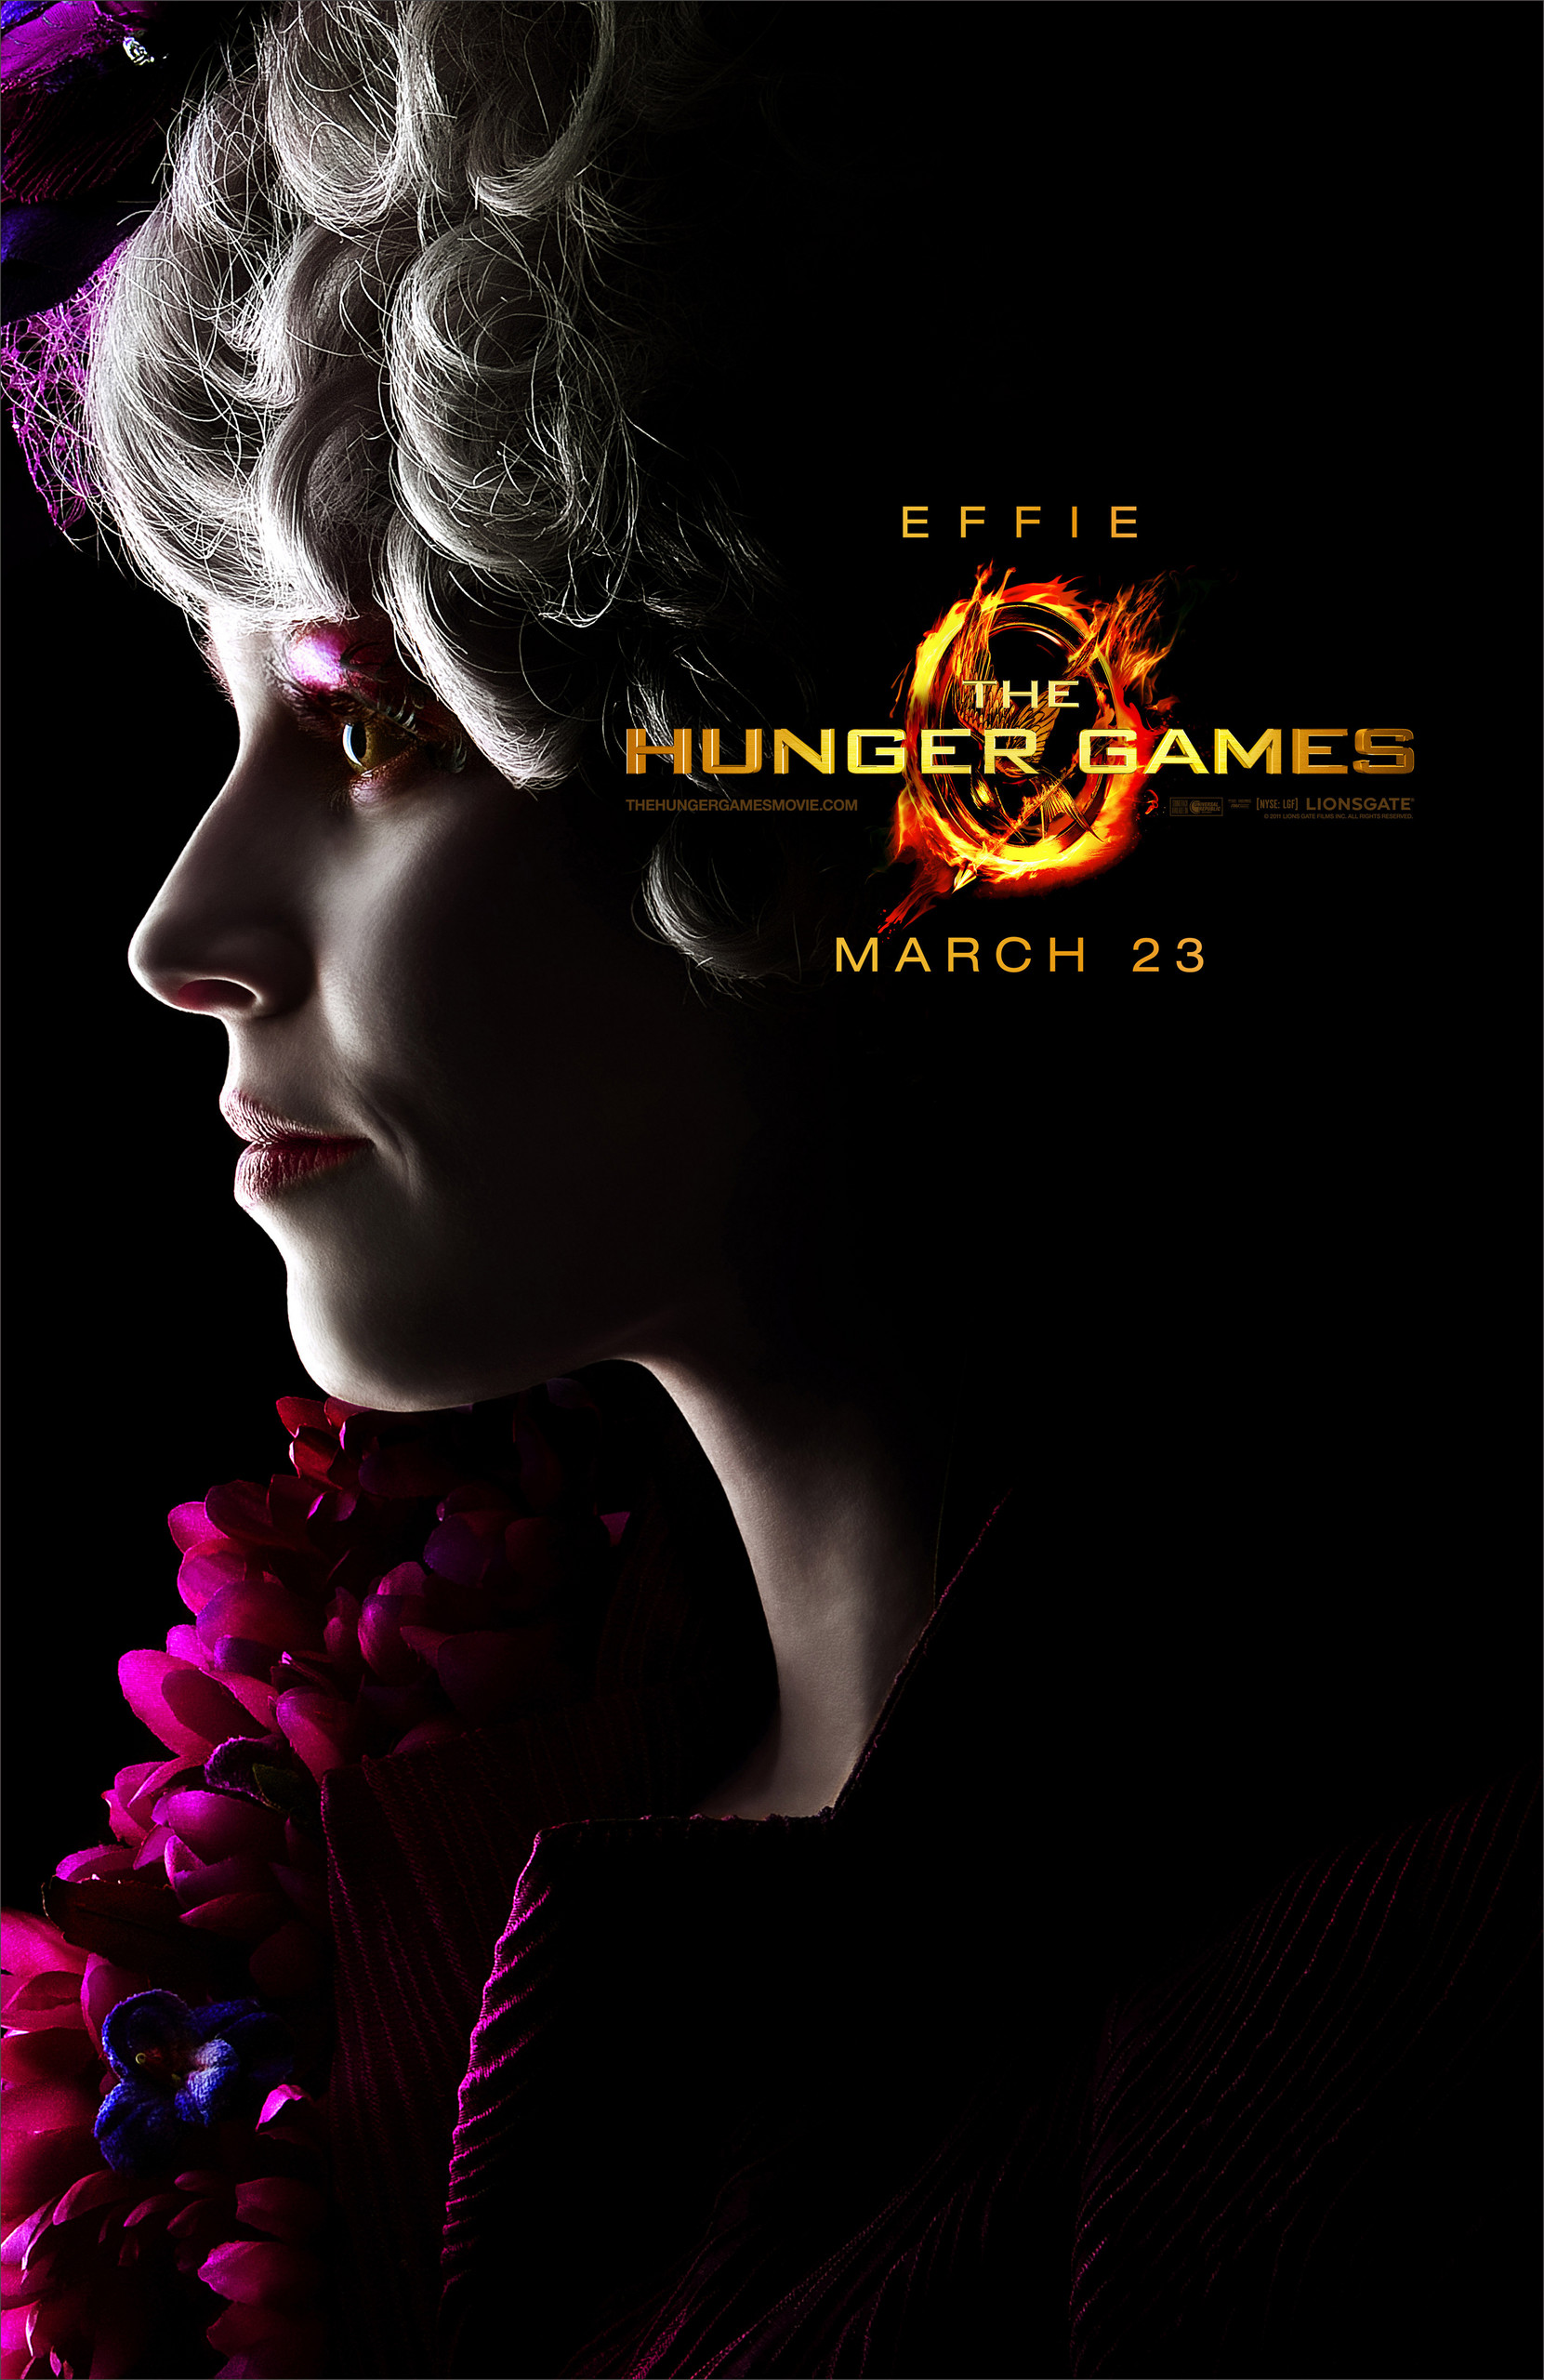 1661x2560 Effie Trinket images The Hunger Games character poster - Effie Trinket HD  wallpaper and background photos